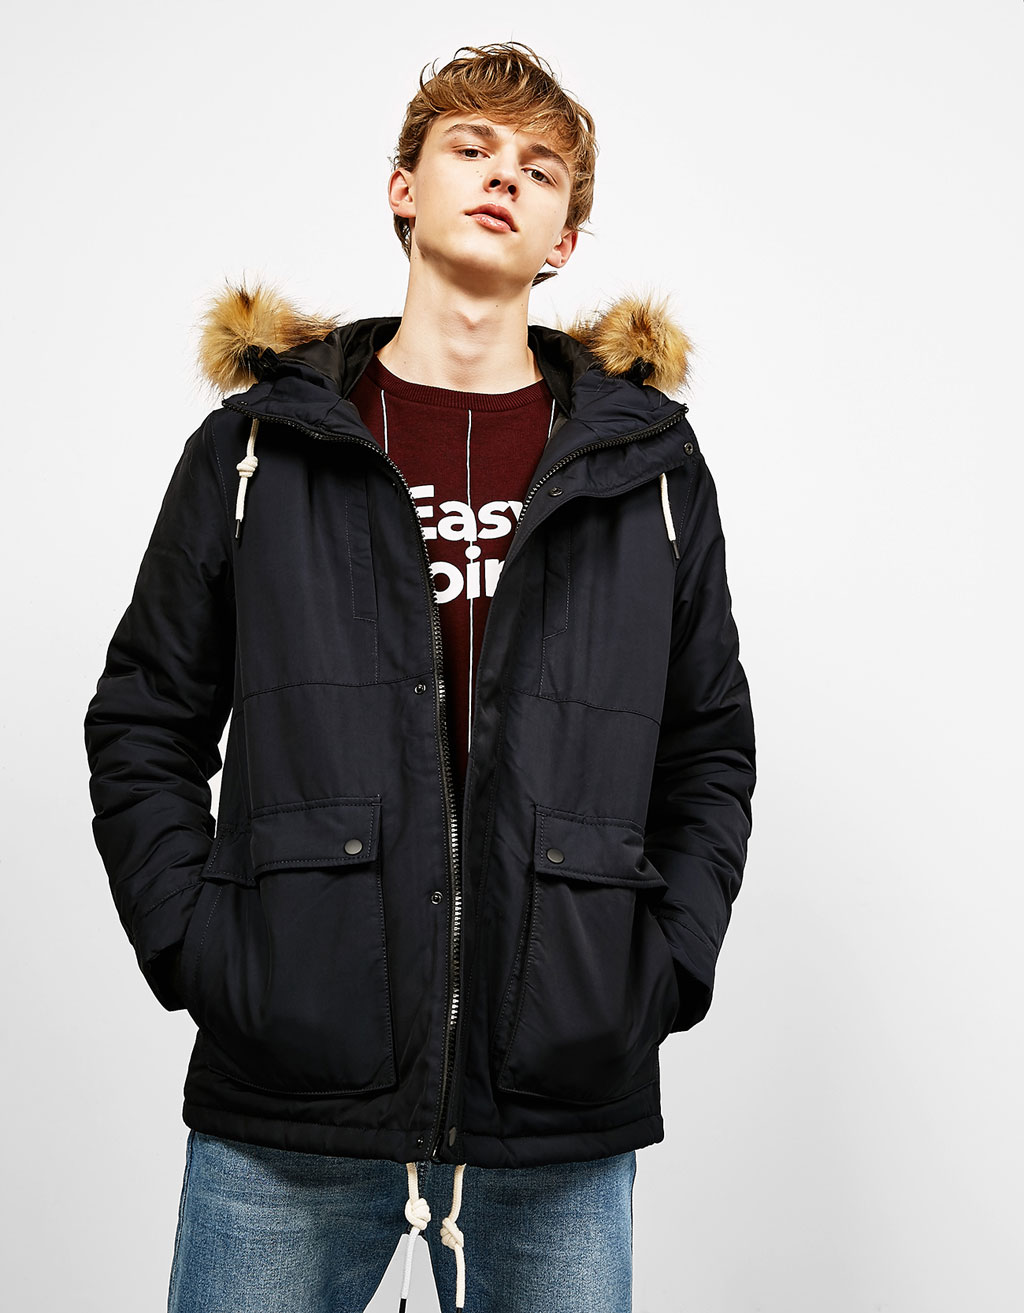 Parka-style jacket with detachable fur-lined hood